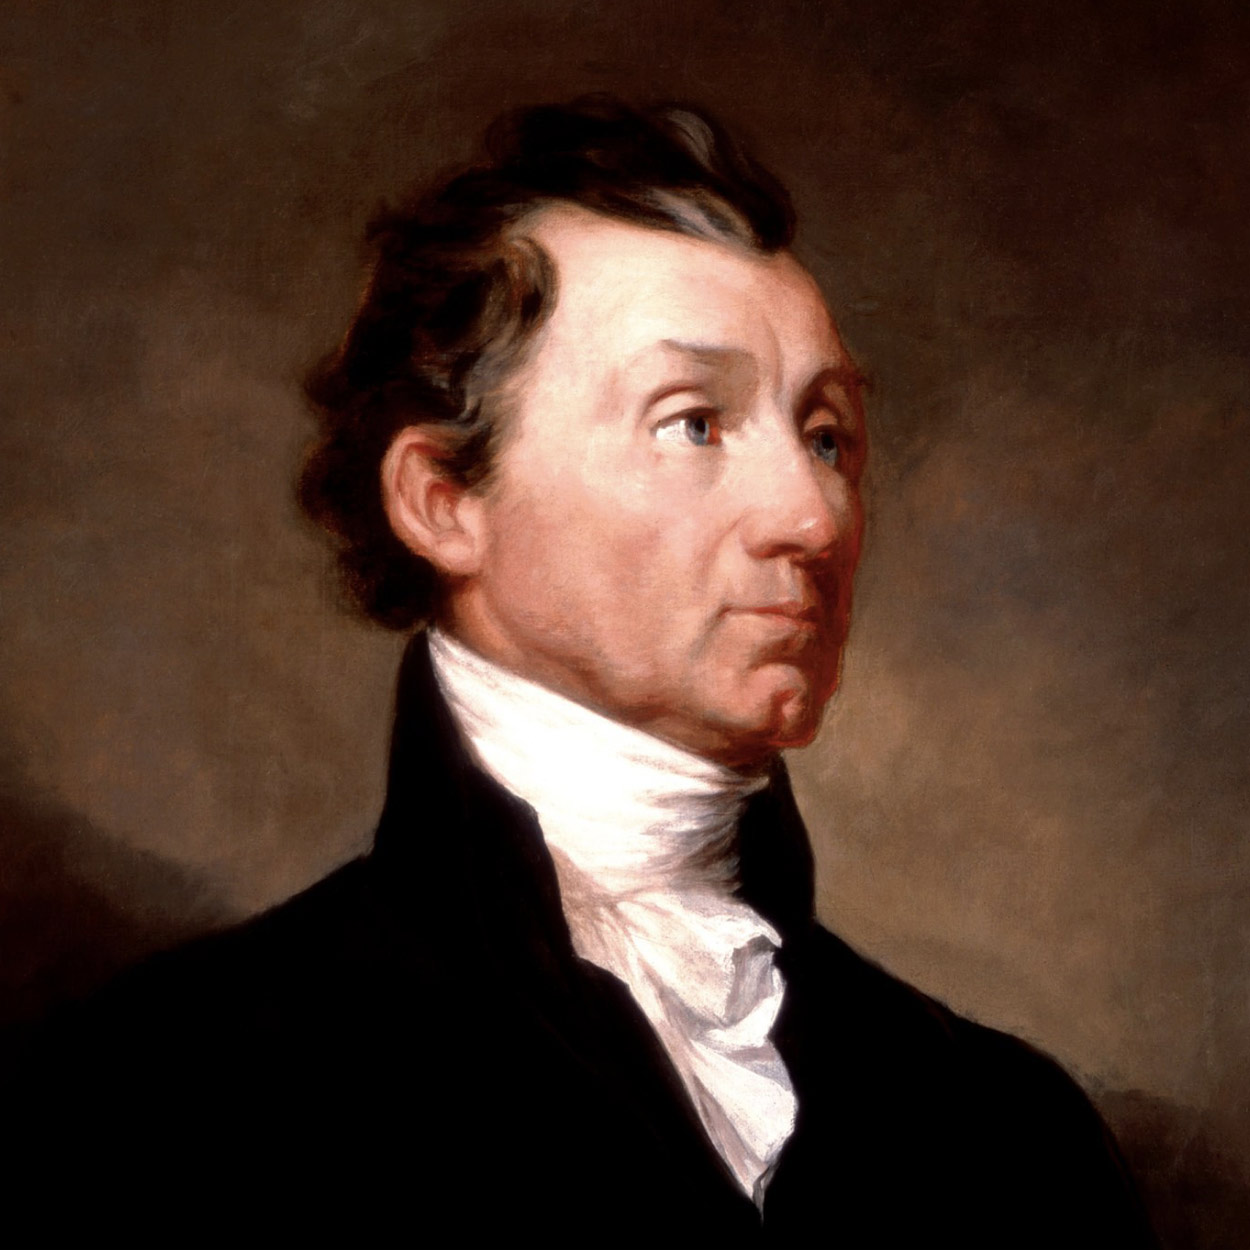 Portrait of James Monroe, the 5th President of the United States